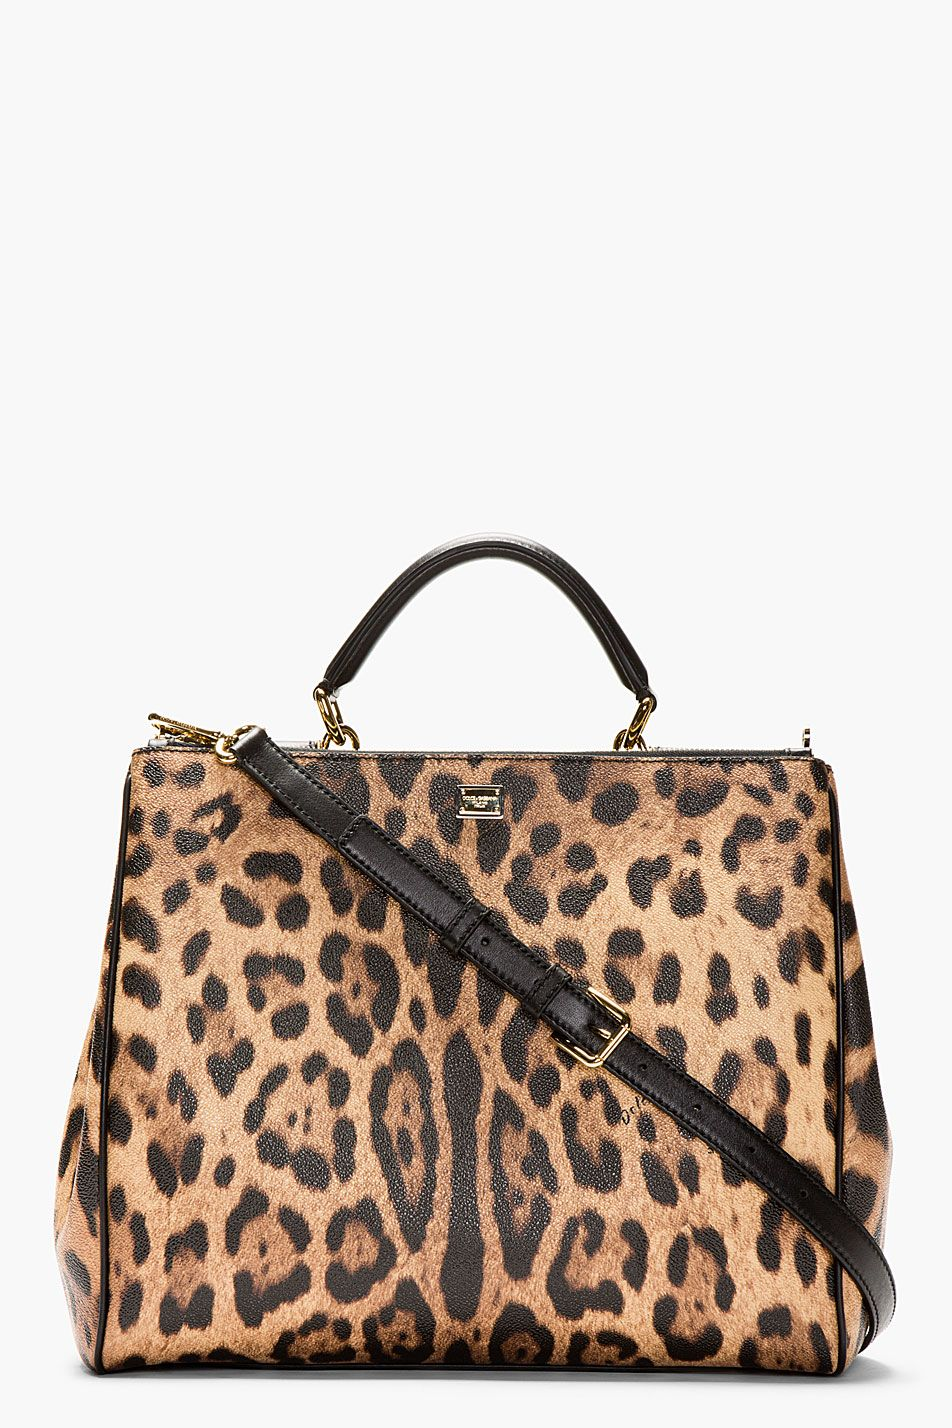 DOLCE & GABBANA Brown Leopard-Print Miss Sicily Shoulder Bag